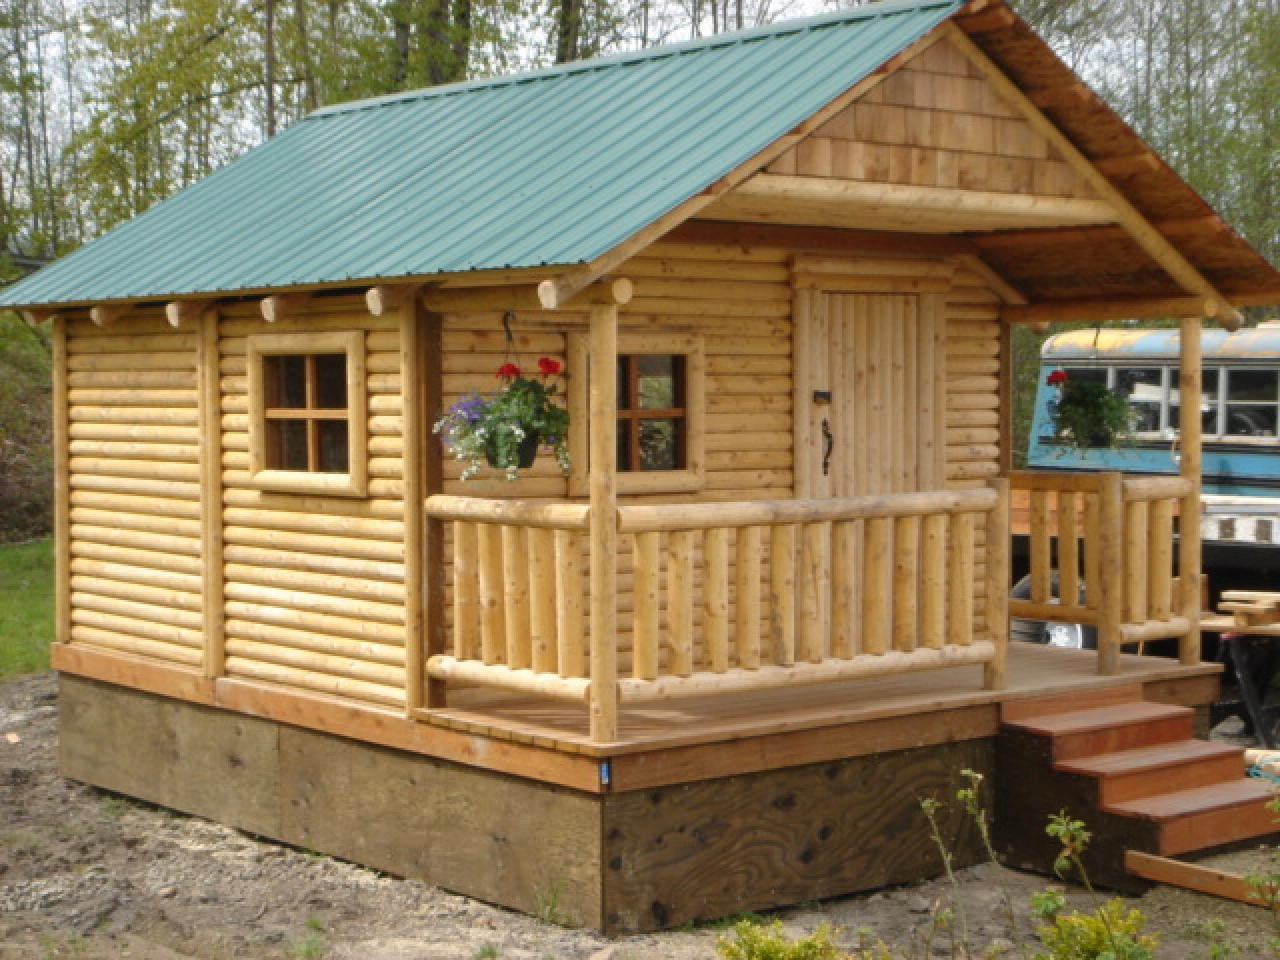 Small Cabin Plans Mini Cabins and Houses, build a small ...